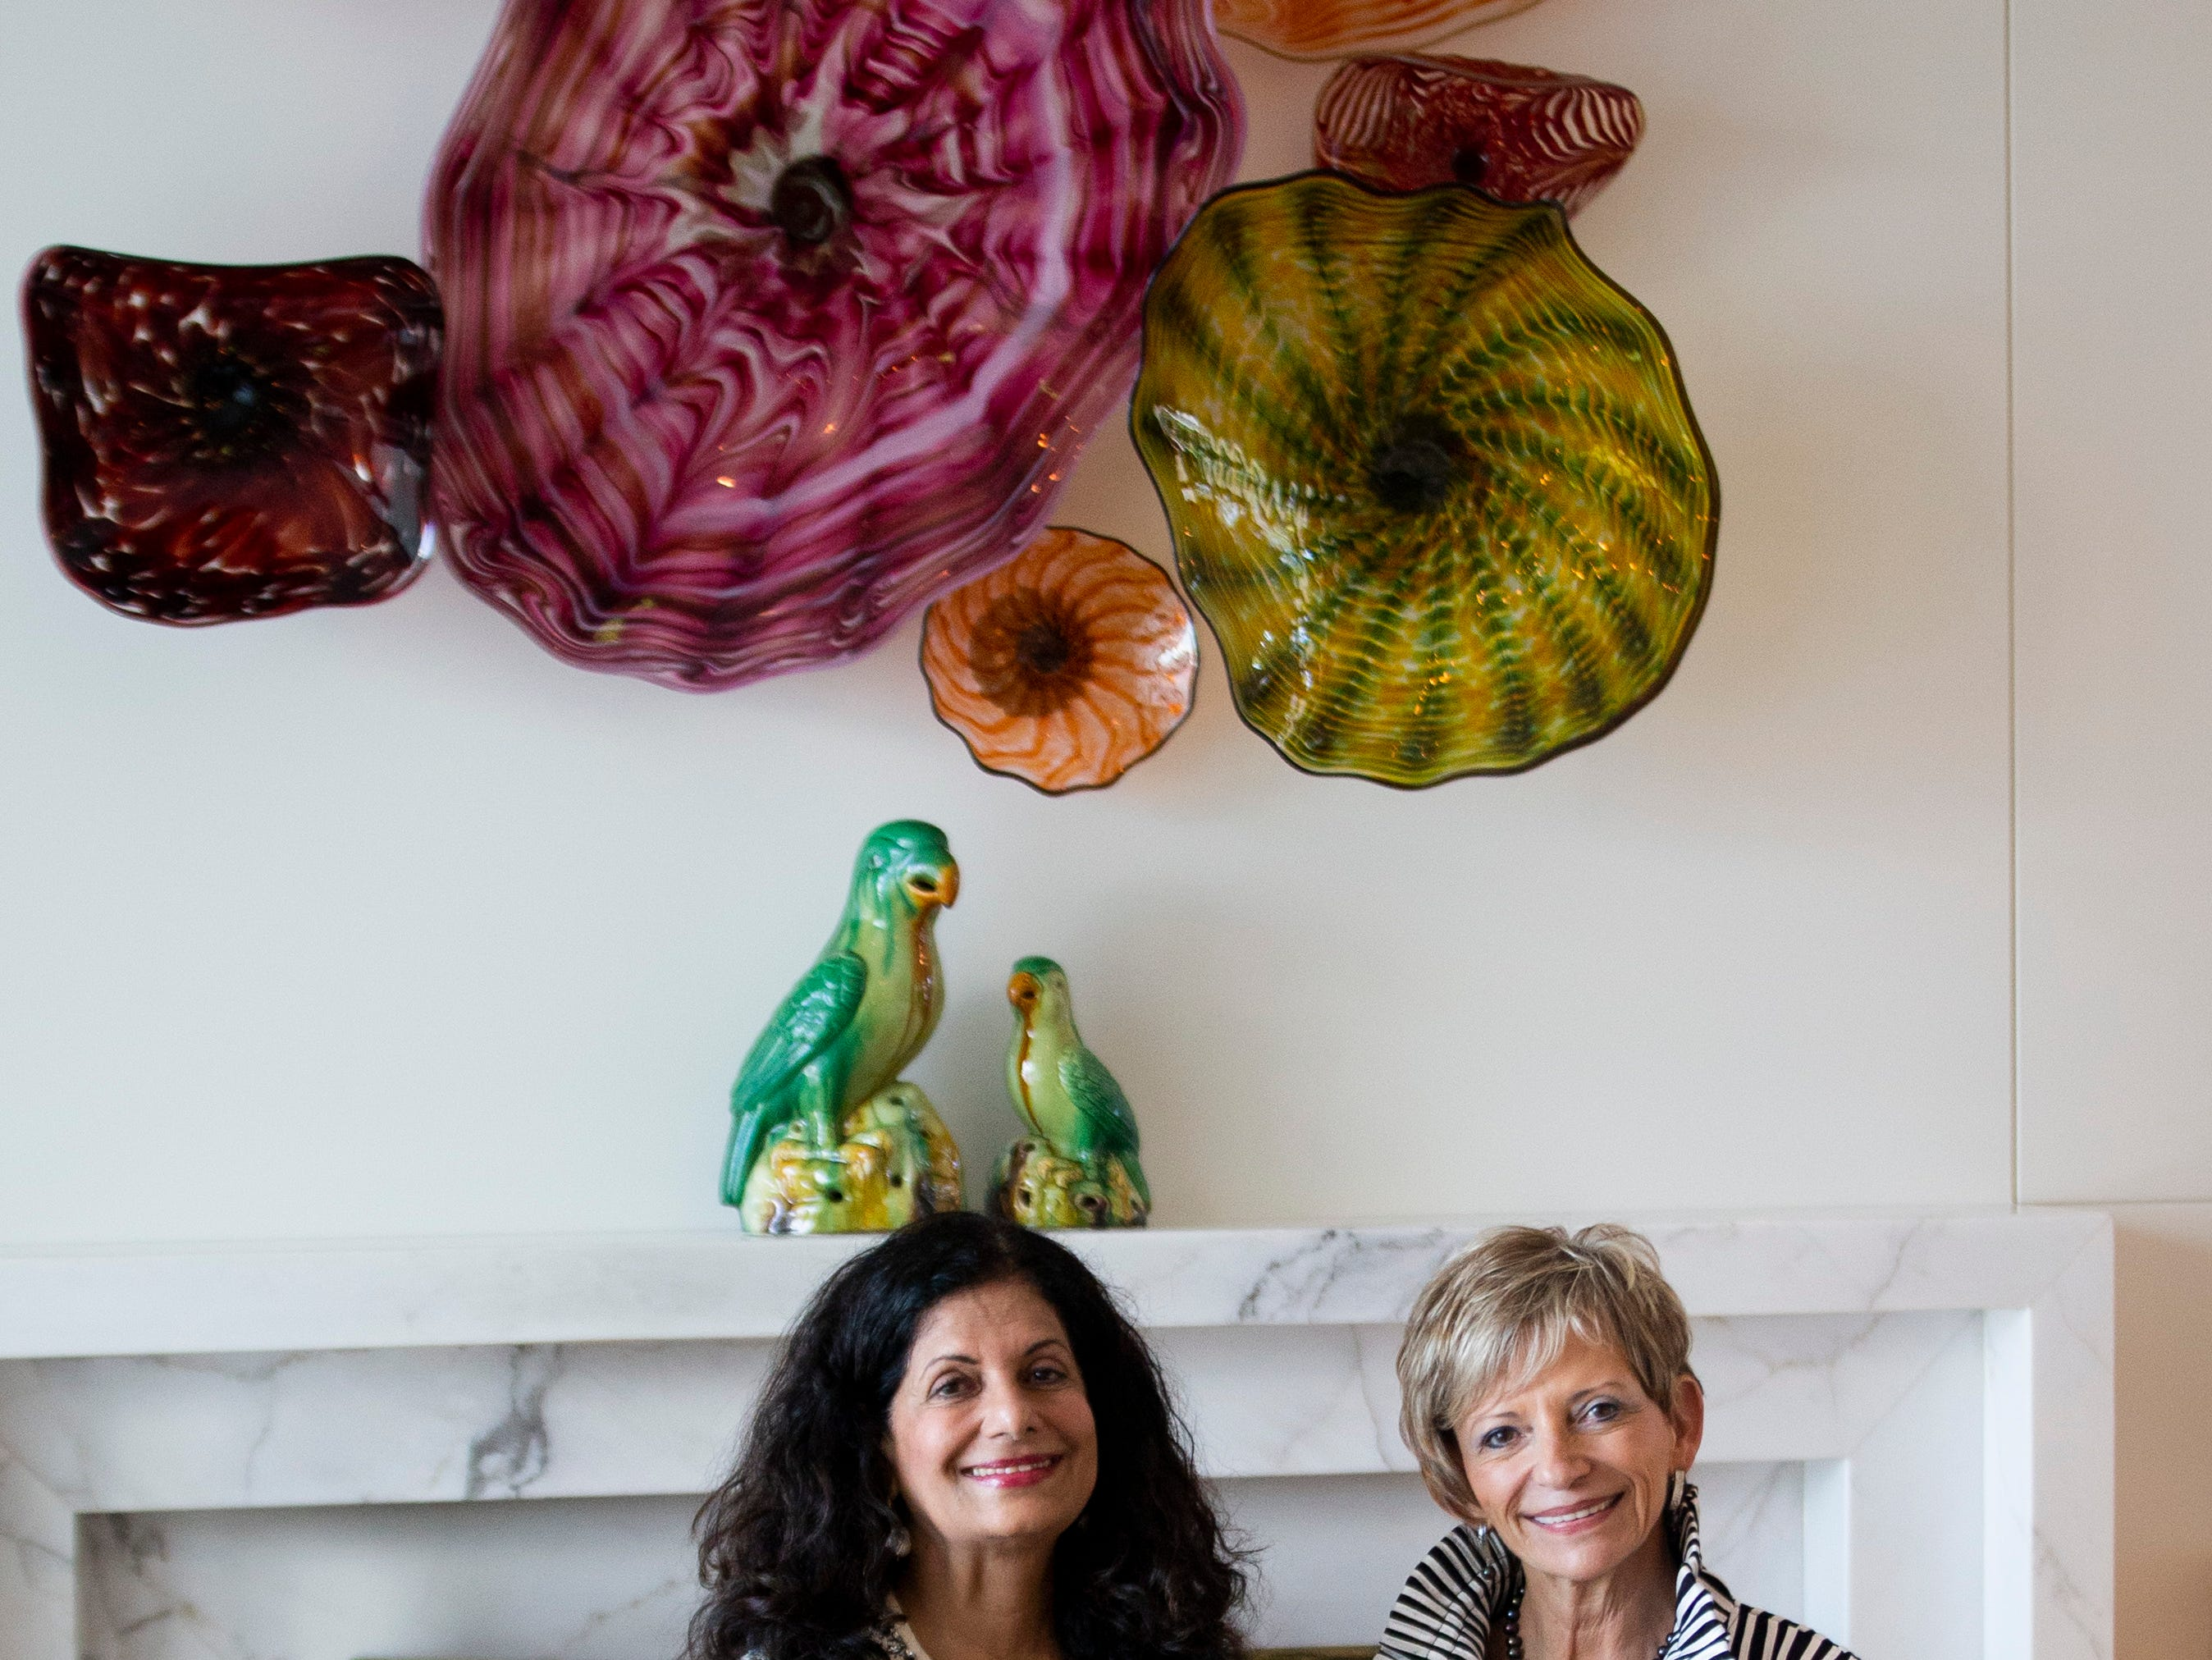 Homeowner Zoreen Ansari, left, poses for a portrait in her living room with Lee Kraus, chair of the Kitchen Tour and past president of the Naples Woman's Club, during the 7th annual Kitchen Tour, hosted by the Naples Woman's Club in Naples on Wednesday, January 16, 2019.